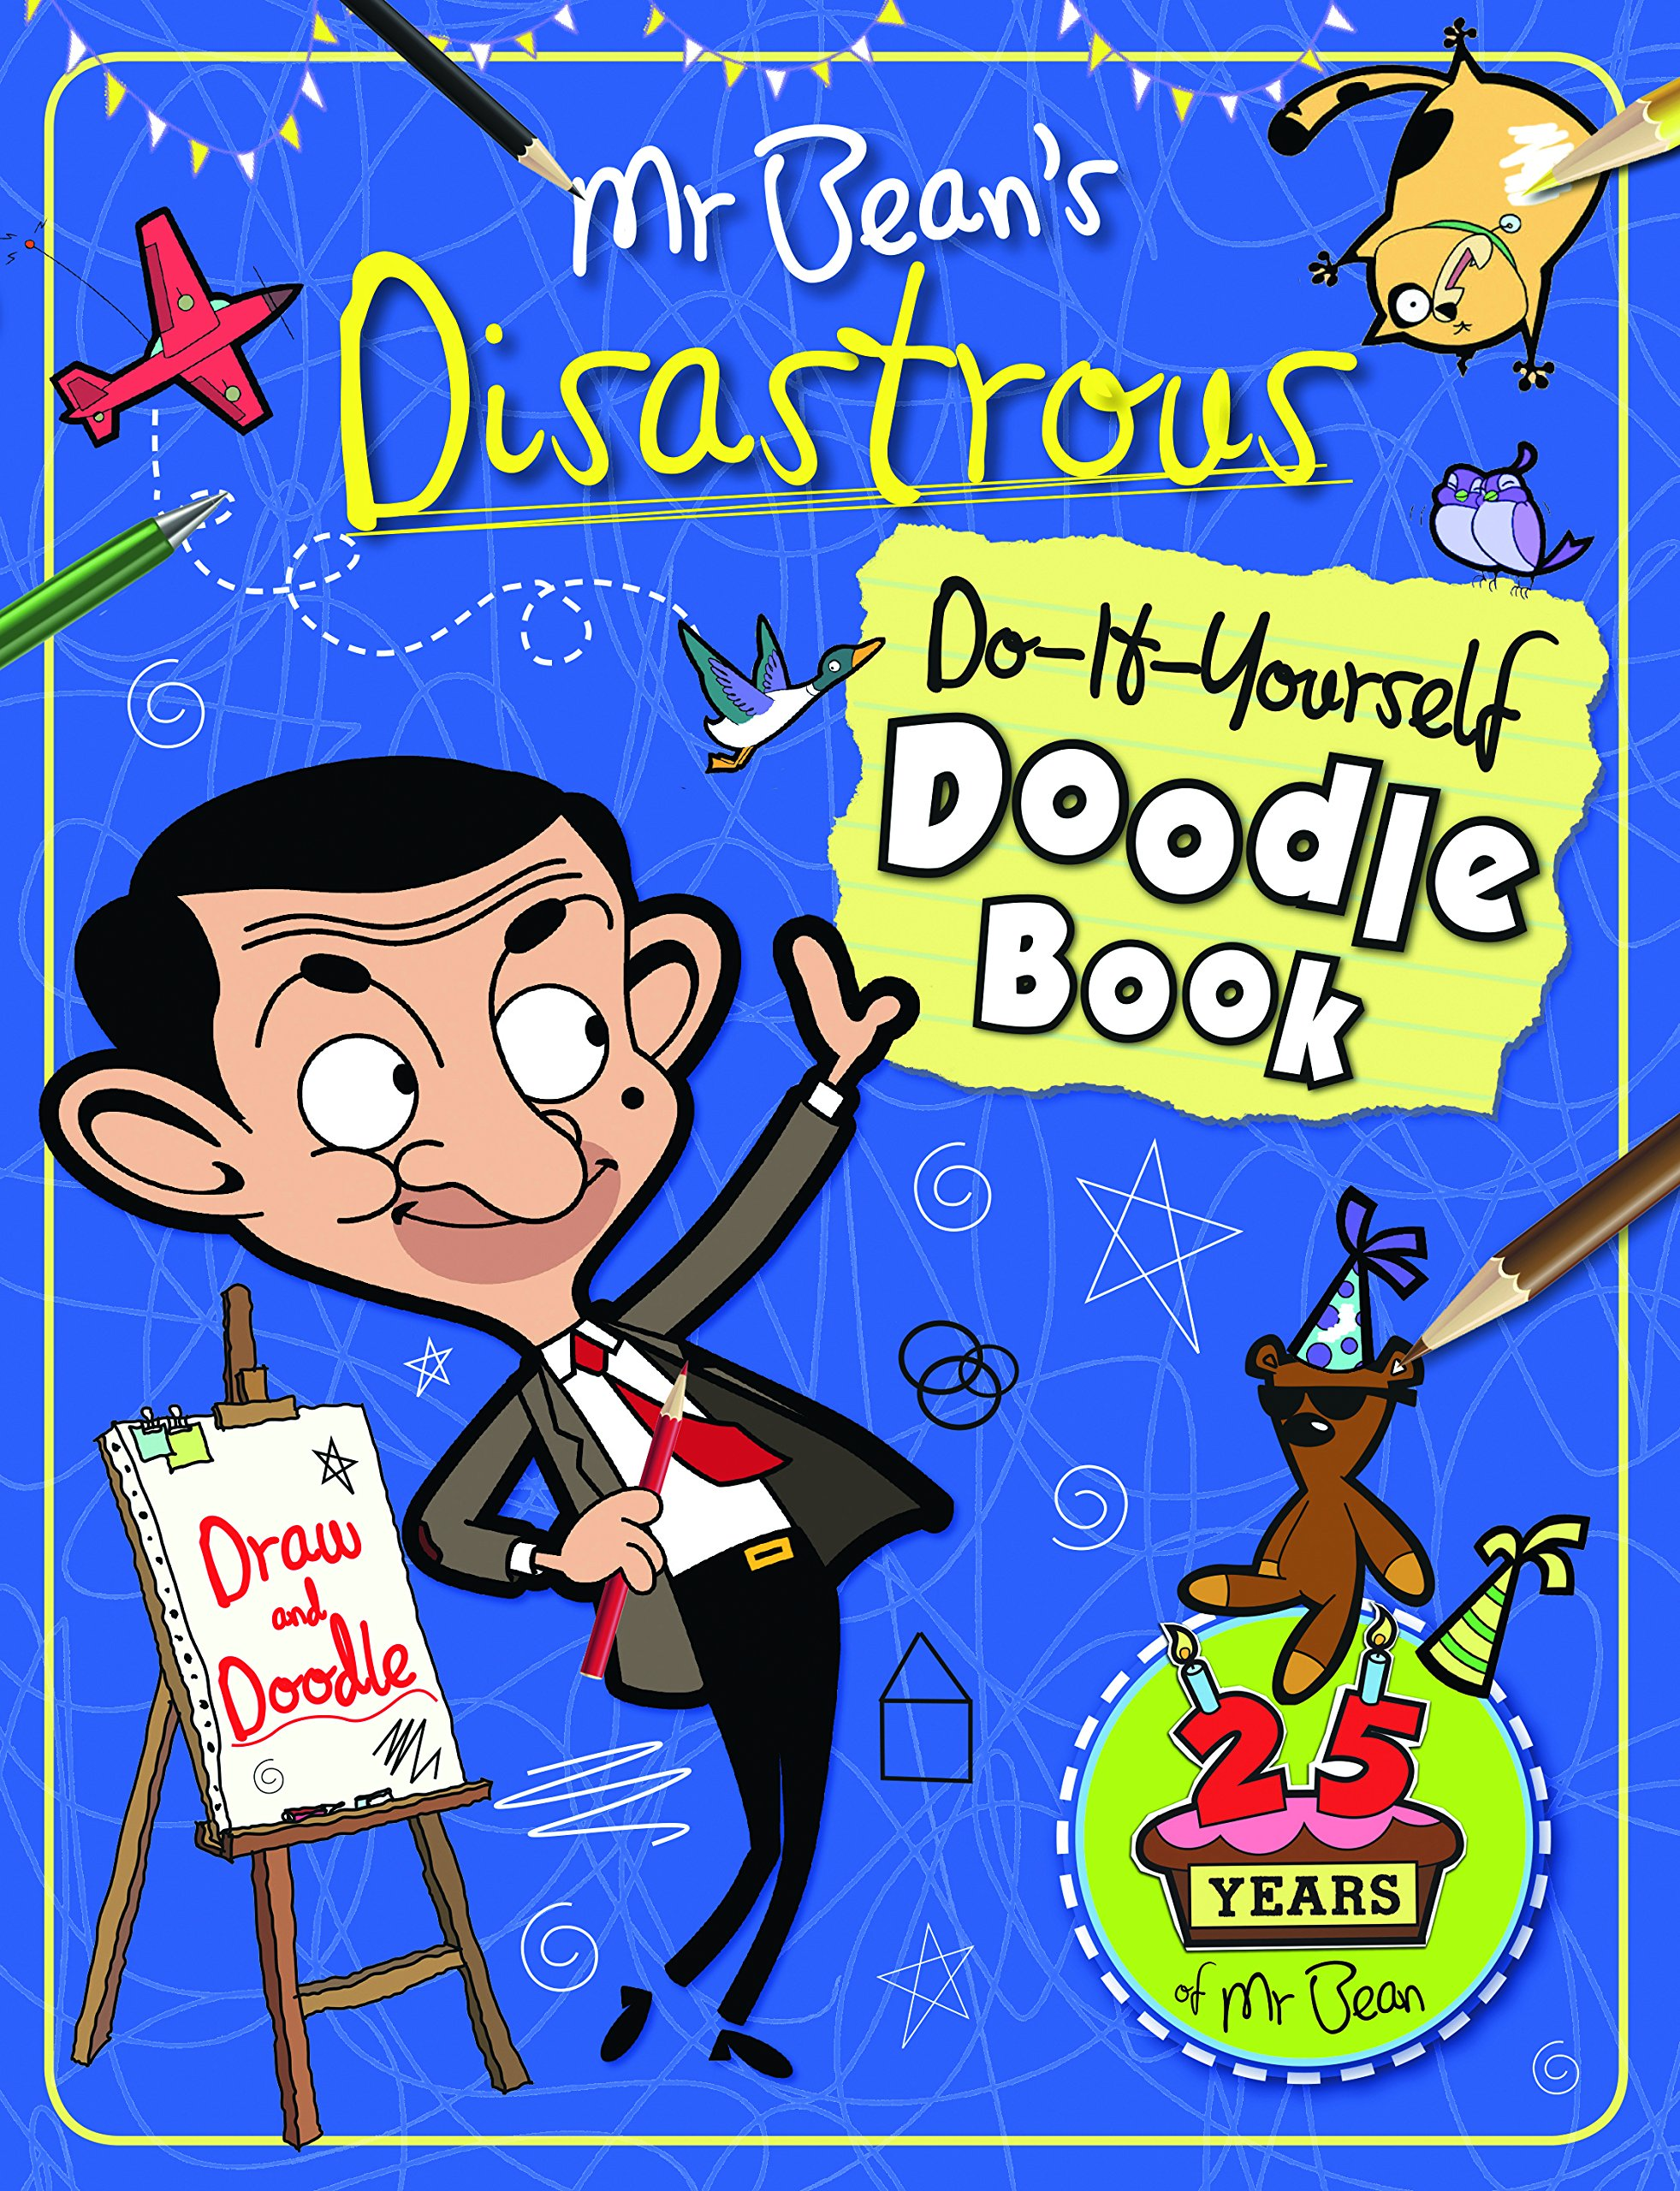 Mr beans disastrous do it yourself doodle book anna brett mr beans disastrous do it yourself doodle book anna brett 9781783121380 amazon books solutioingenieria Choice Image